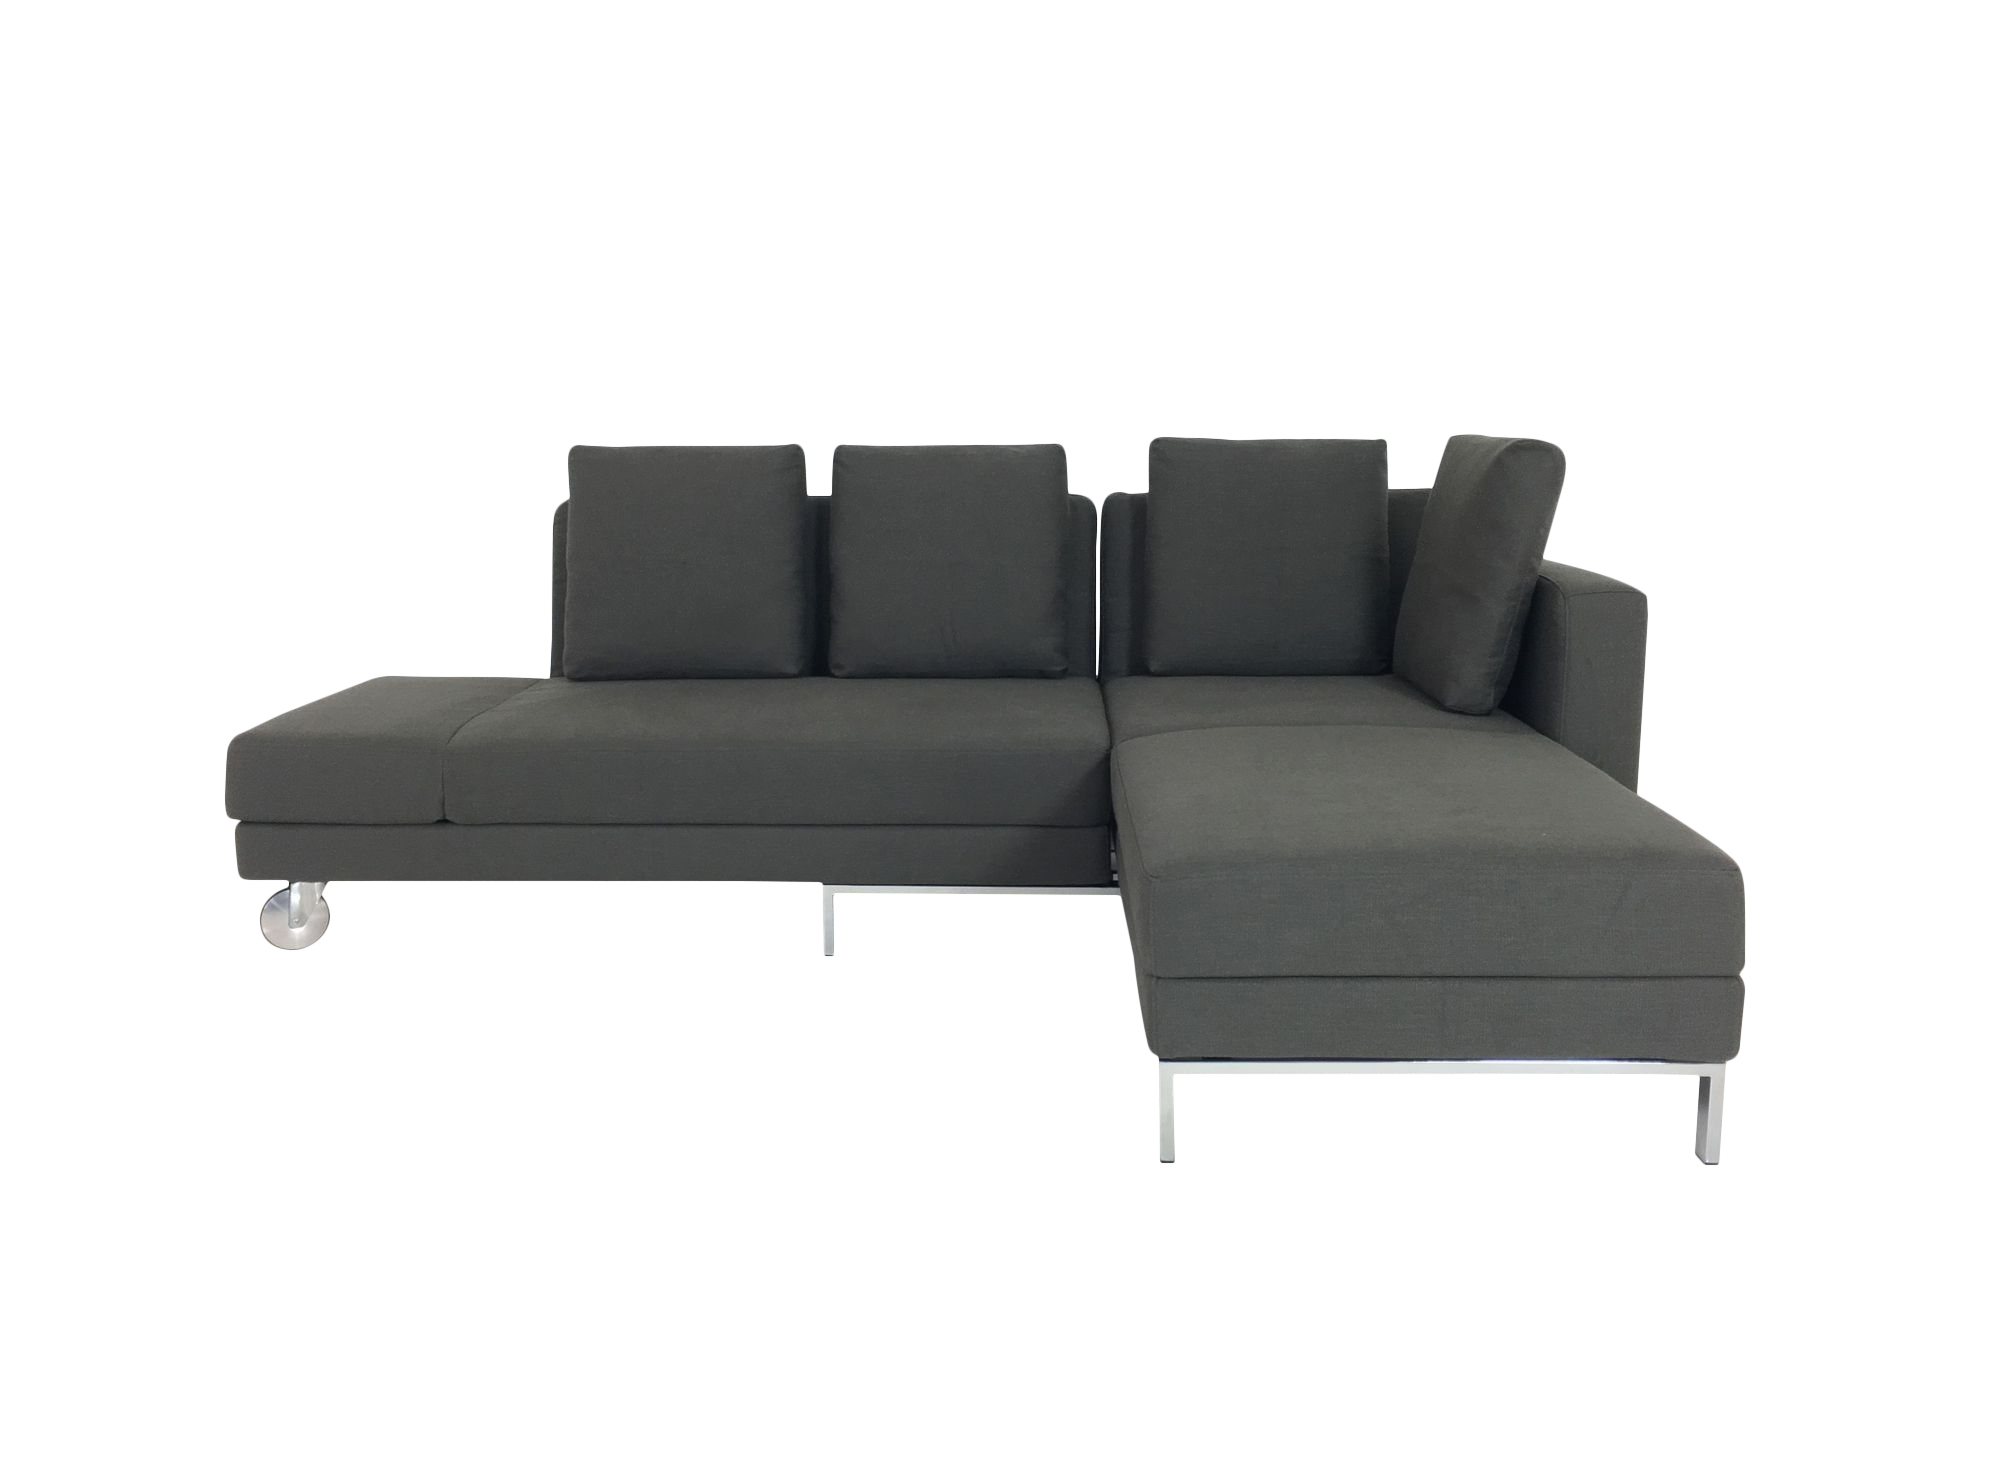 br hl four two sofa mit recamiere und bettfunktion in. Black Bedroom Furniture Sets. Home Design Ideas